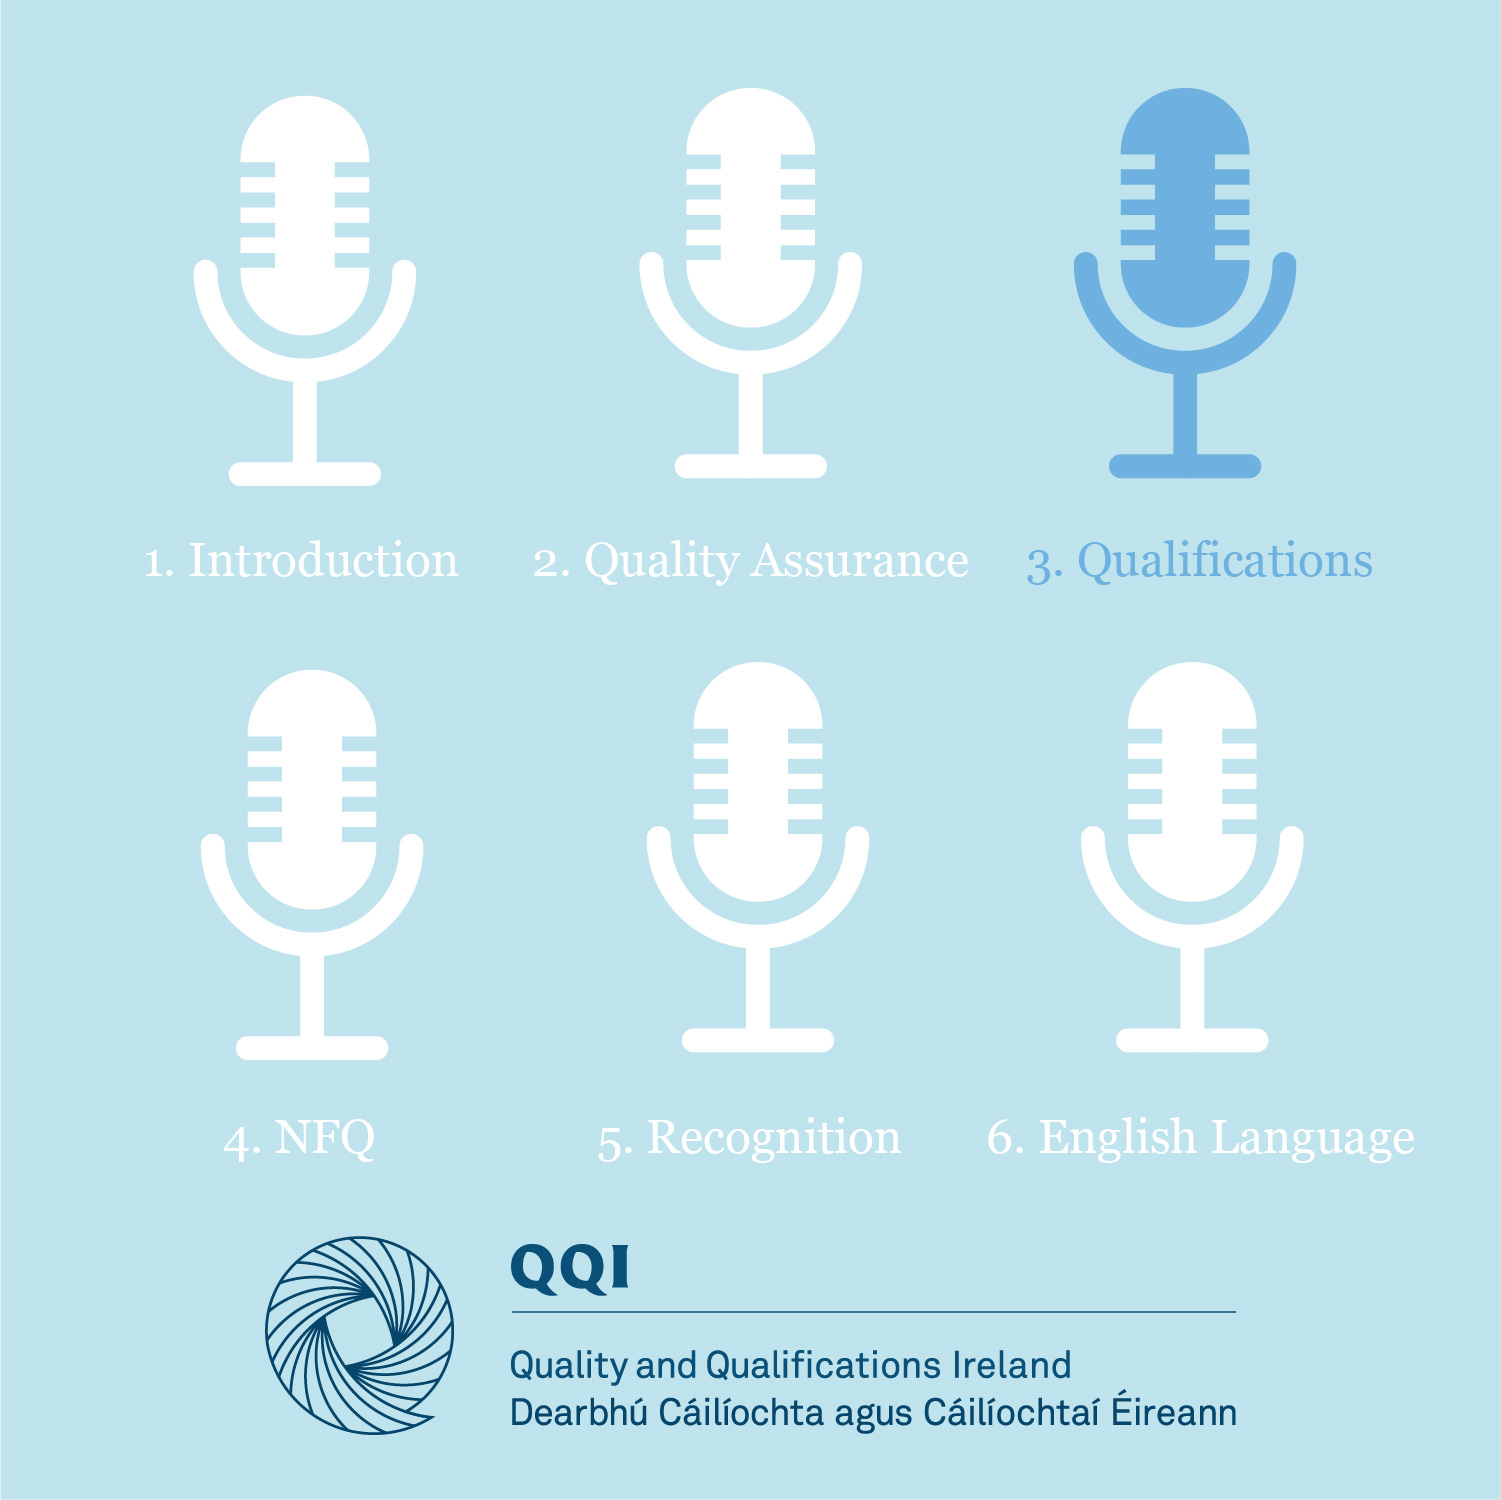 3. Qualifications and the QQI Award